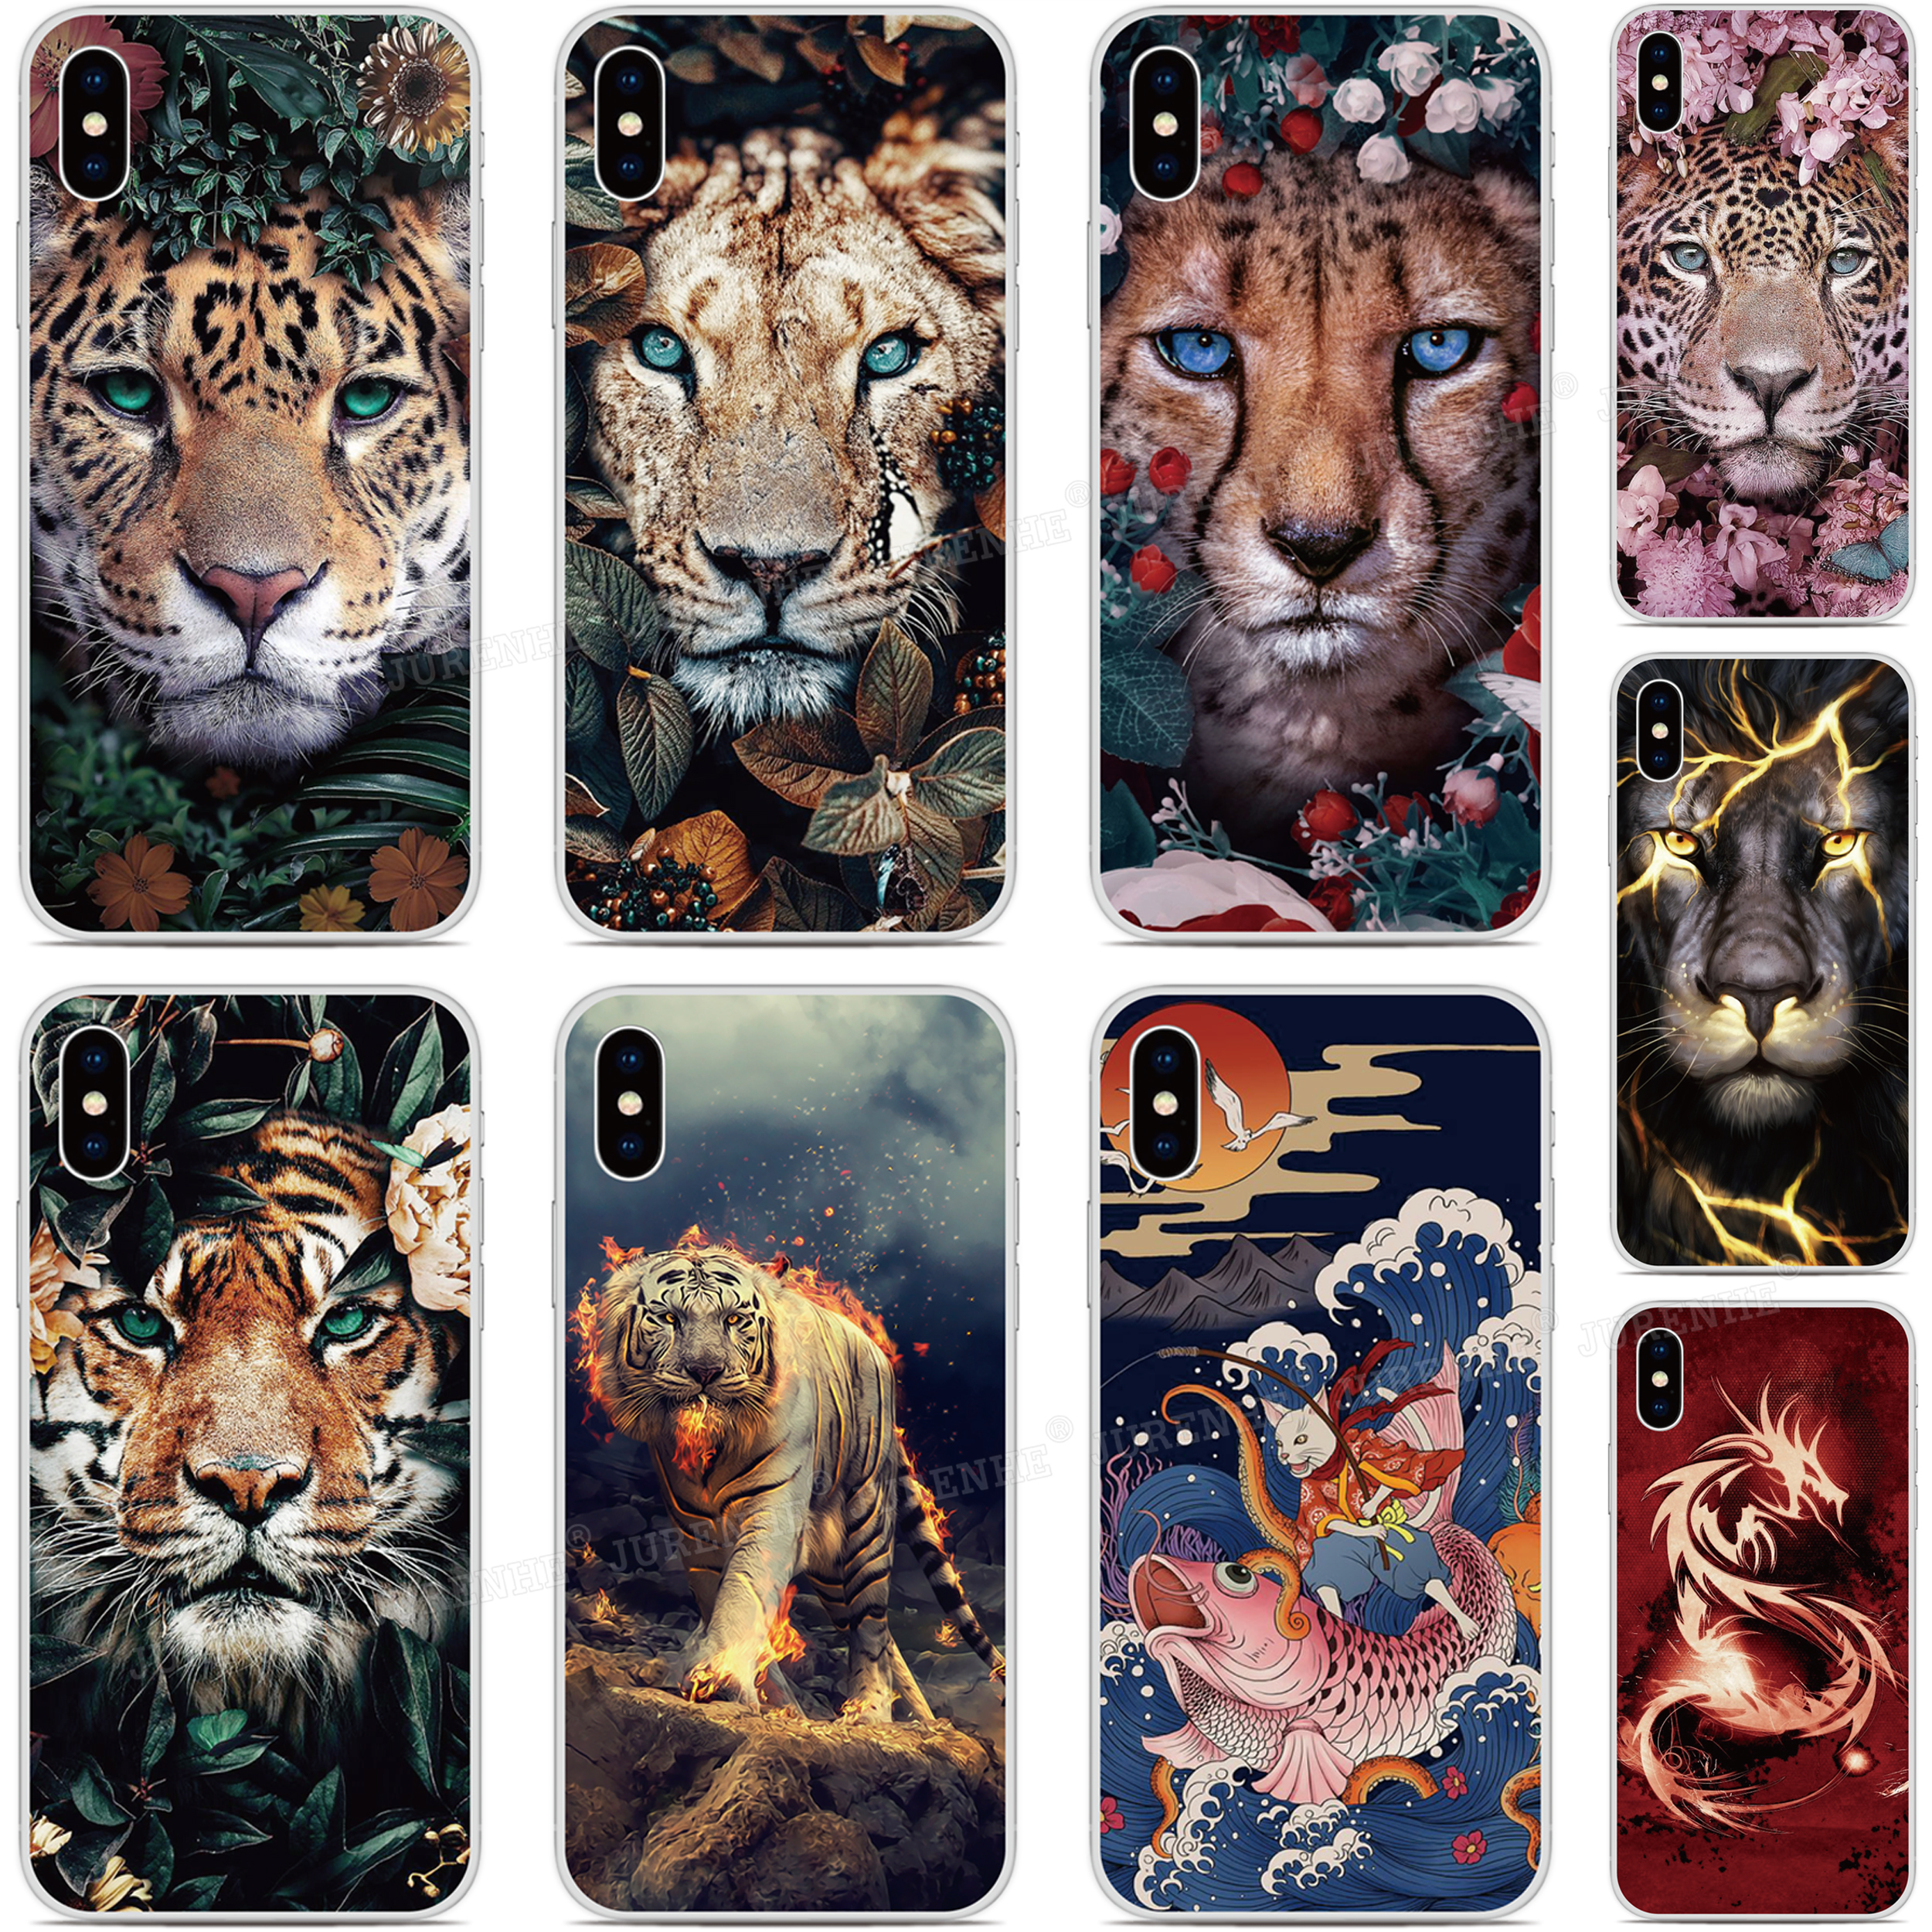 Flower Dog Tiger Dragon Phone <font><b>Case</b></font> For <font><b>Ulefone</b></font> Note 7 , Note 7P , Power 6 S10 <font><b>S1</b></font> Pro S7 Silicone Back Protection <font><b>Case</b></font> image